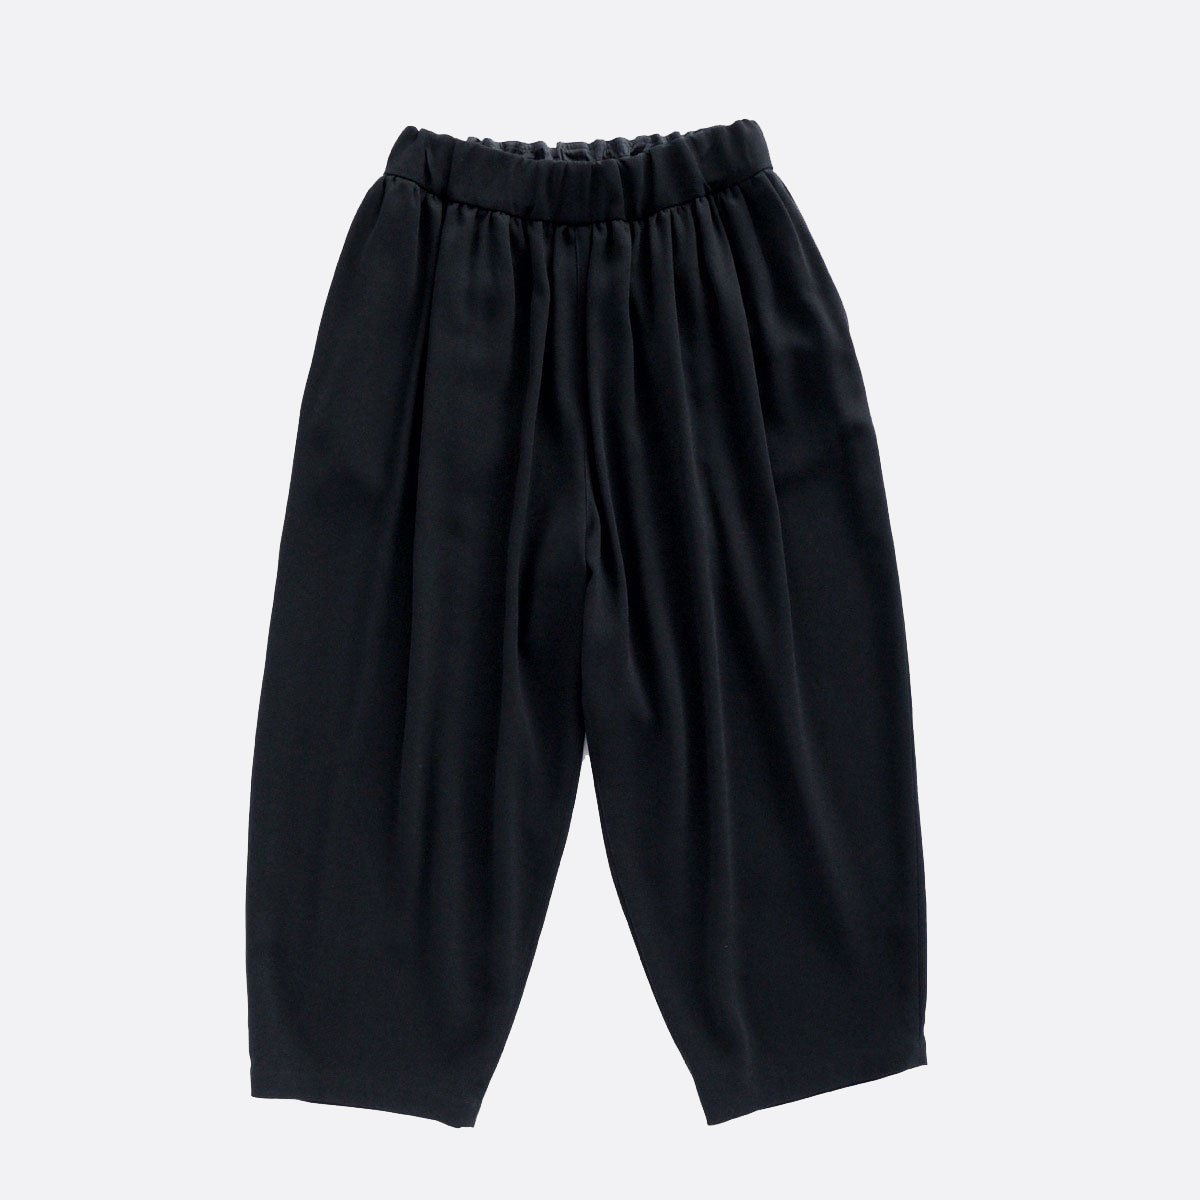 NO CONTROL AIR ACETATE & POLYESTER DOUBLE CLOTH WIDE EASY PANTS (black)